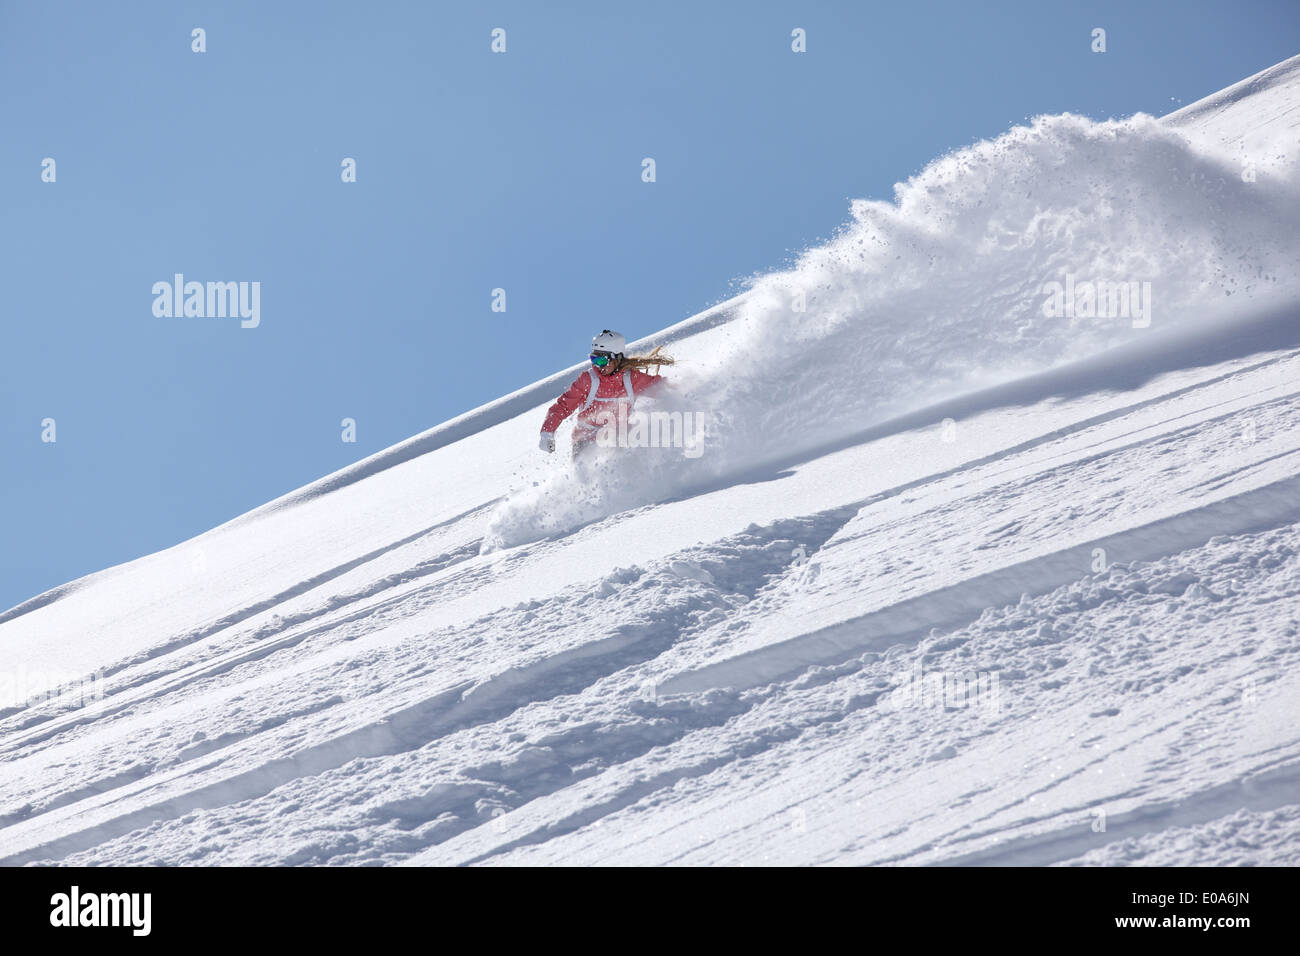 Young woman snowboarding down steep mountain, Hintertux, Tyrol, Austria - Stock Image